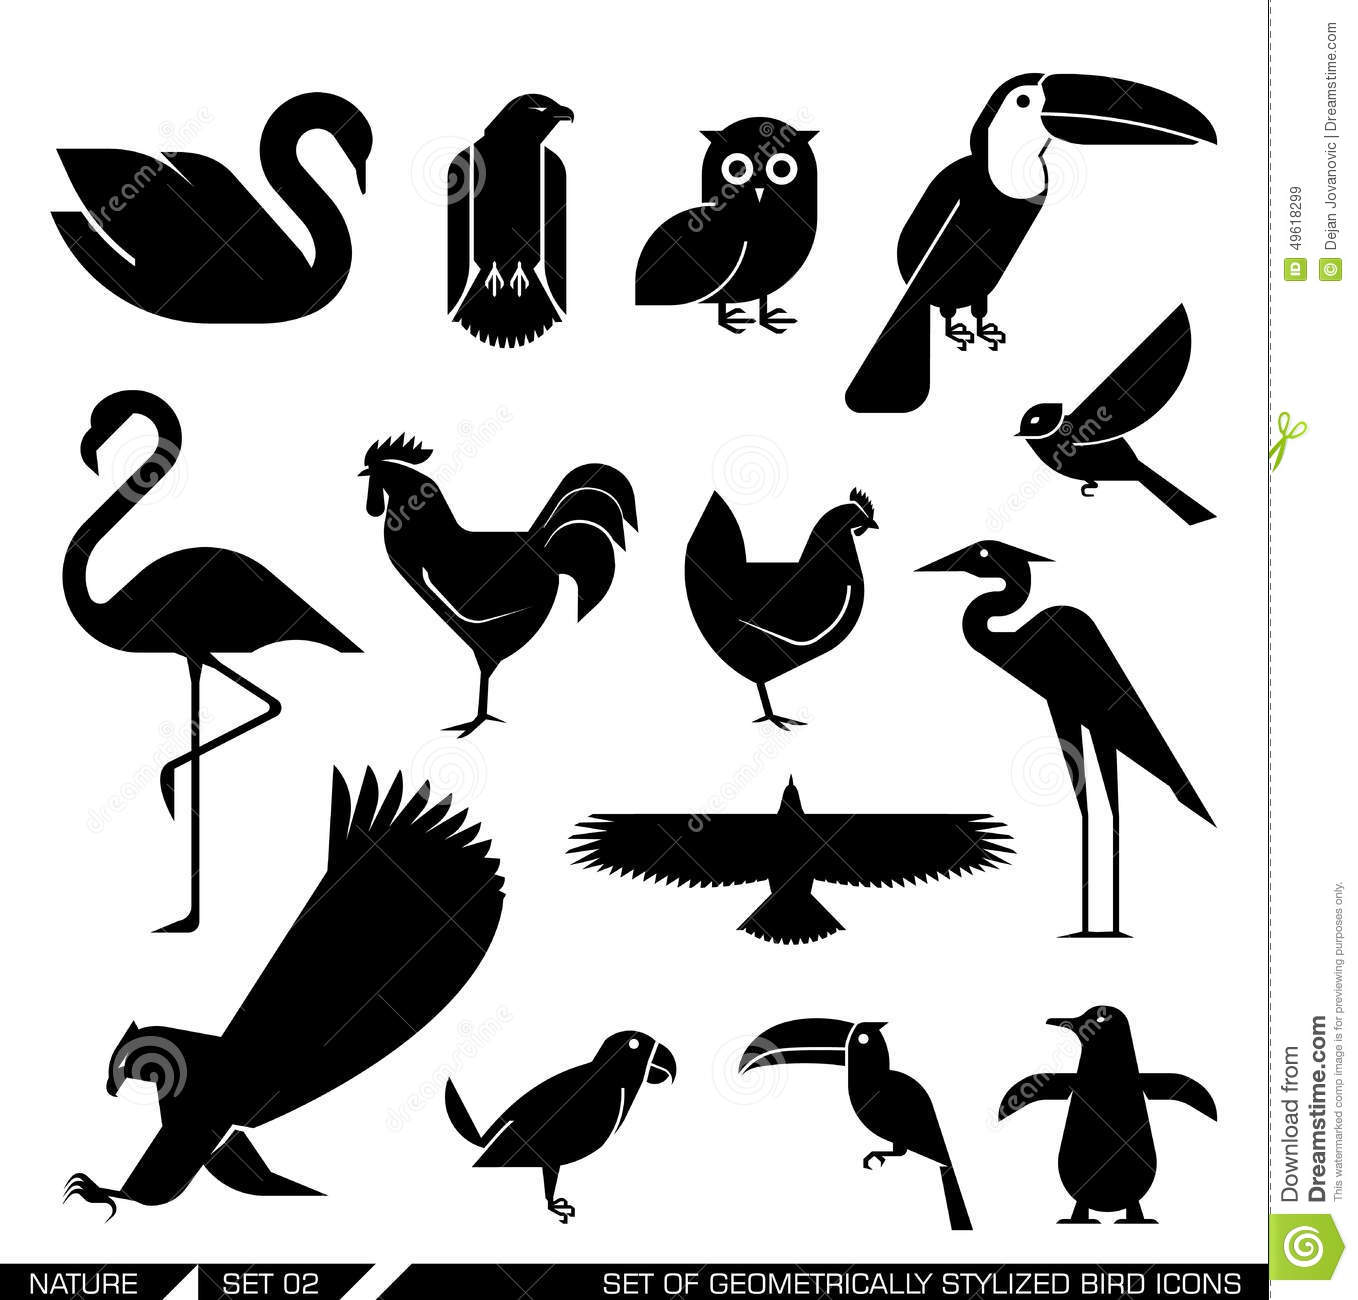 Set of various bird icons: swan owl eagle rooster flamingo penguin ...